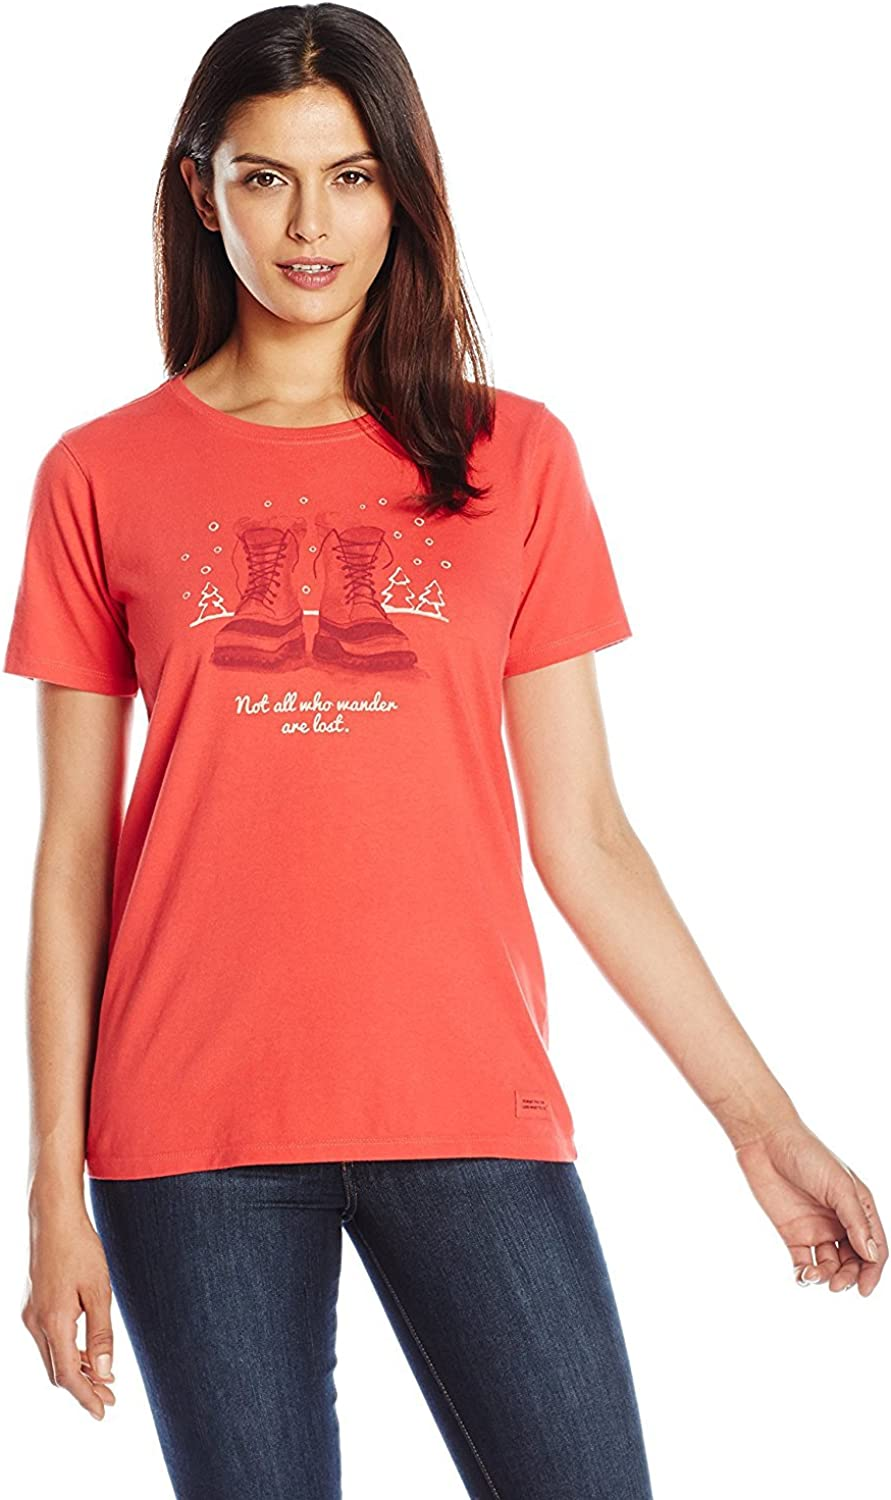 Life is good Womens Crusher Winter Wander Boots Tee Simply Red